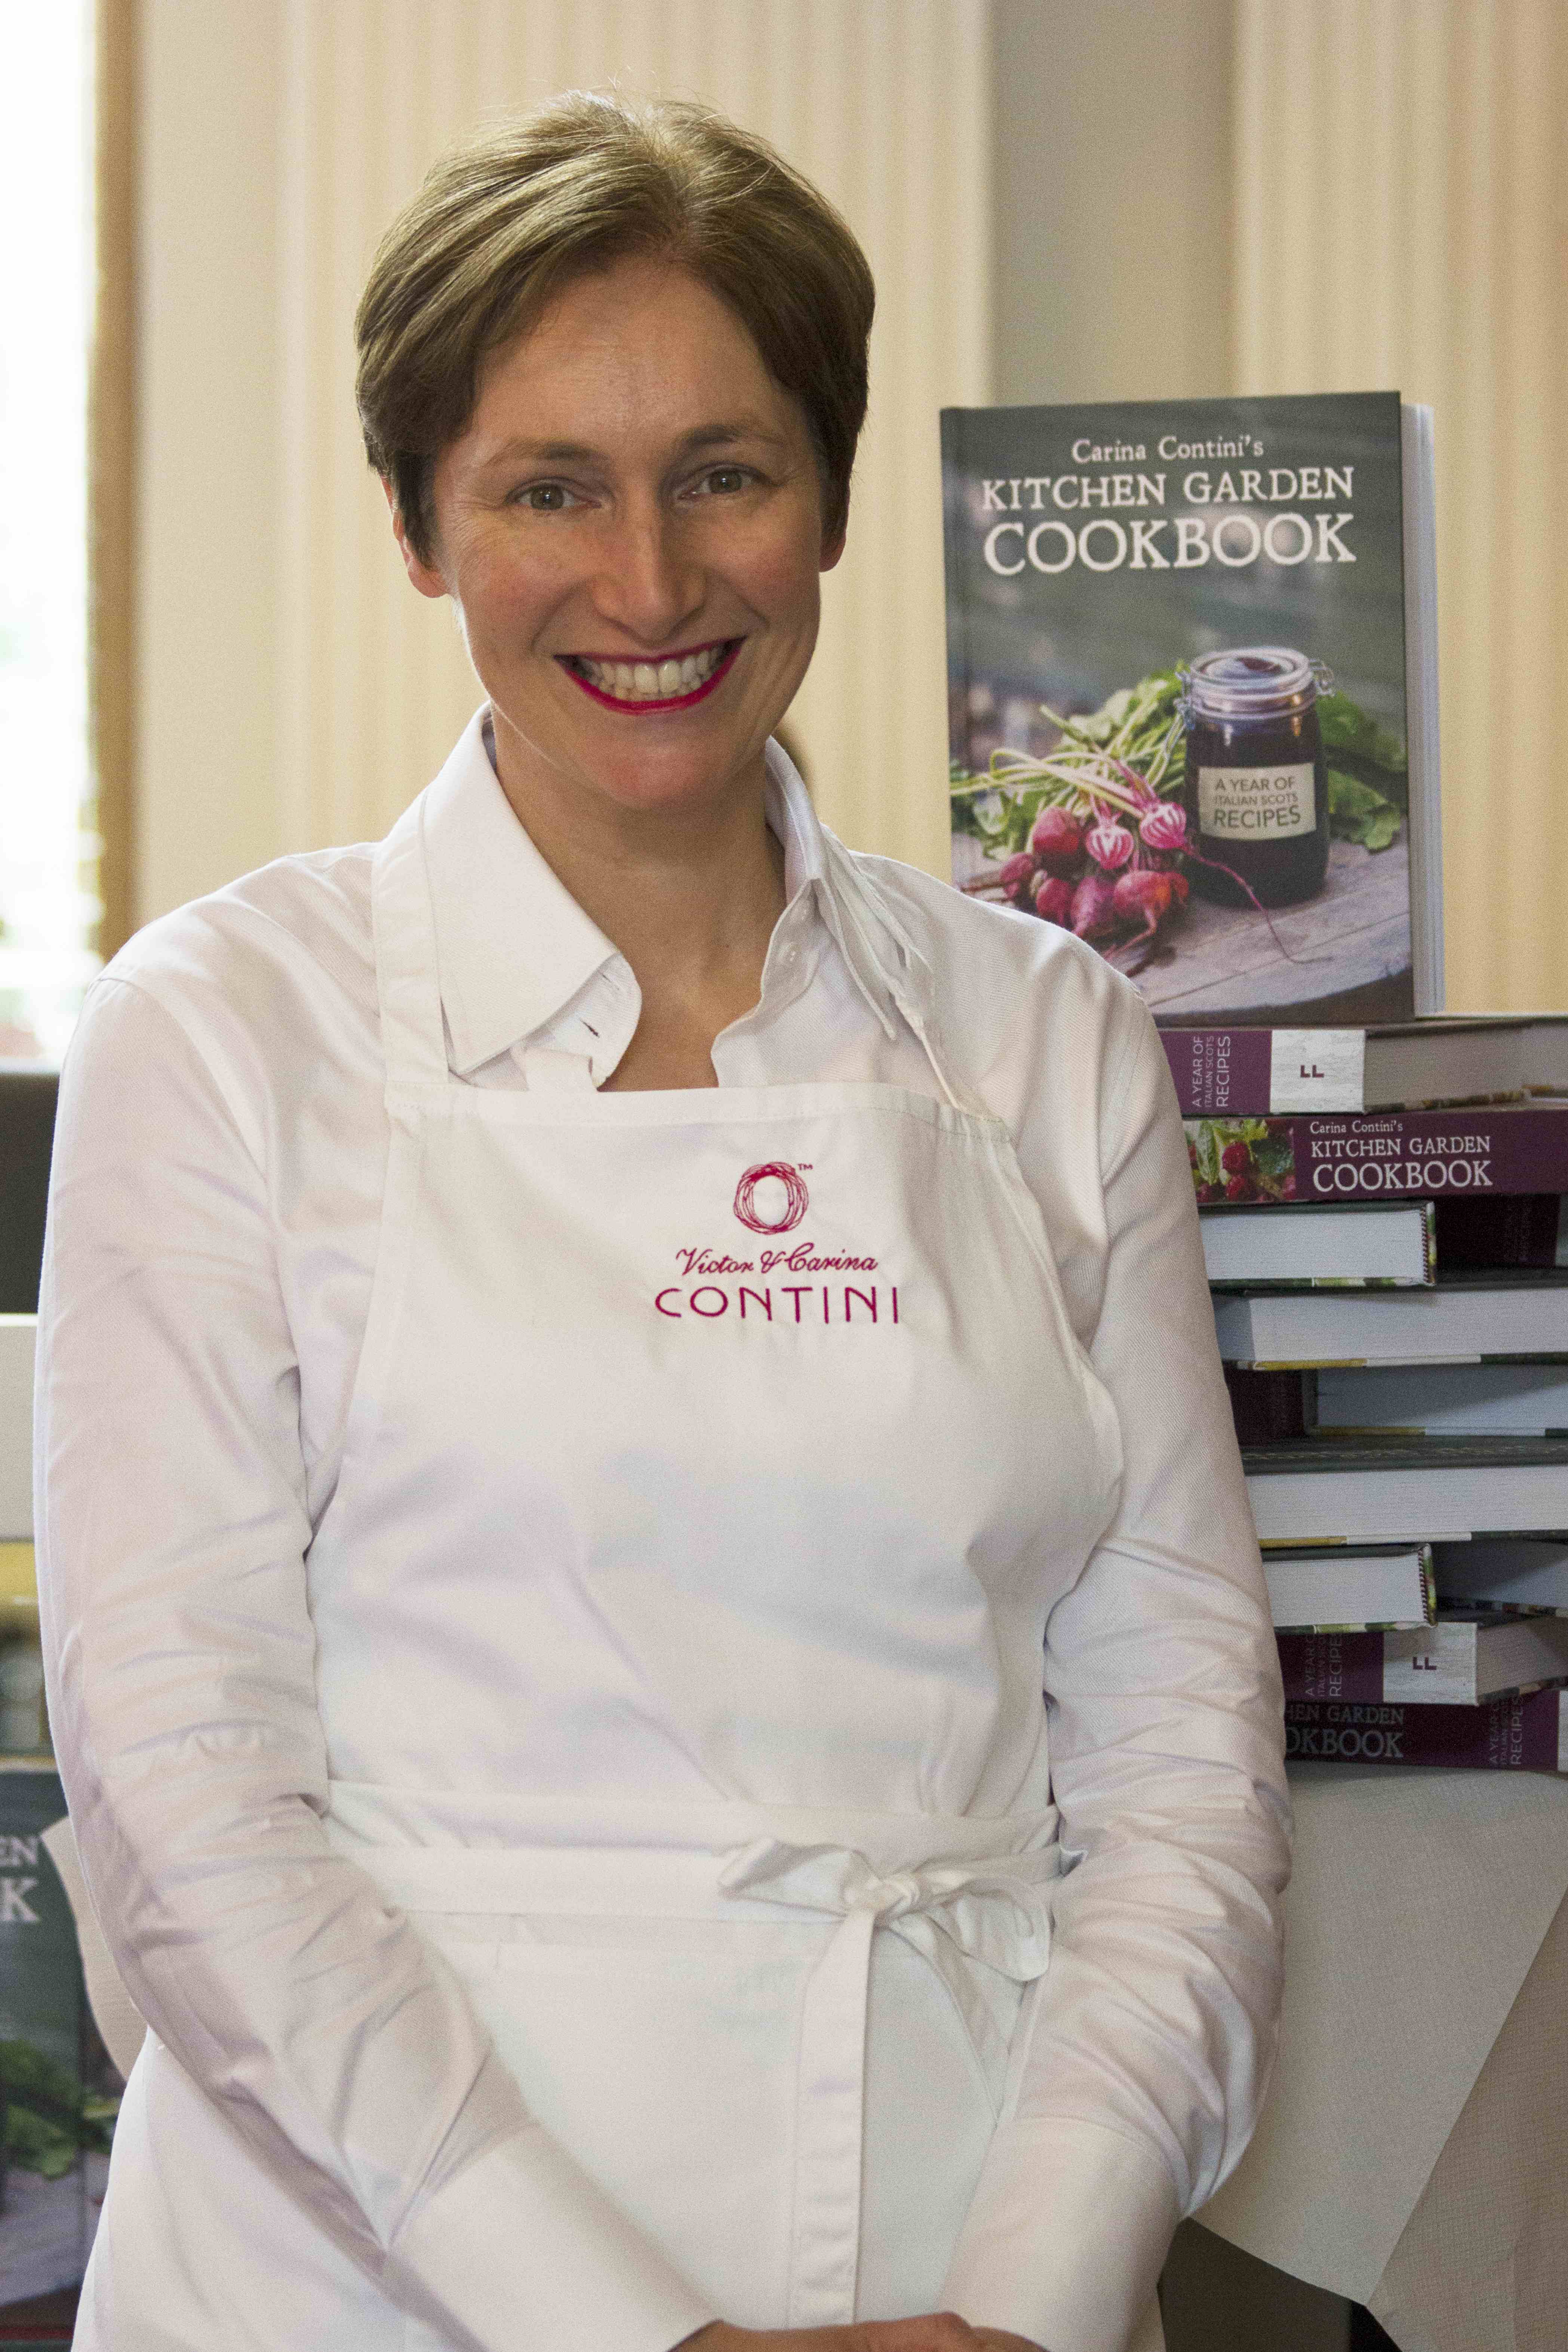 Kitchen Garden Cookbook Recipes And Cookery Demonstrations Contini Edinburgh